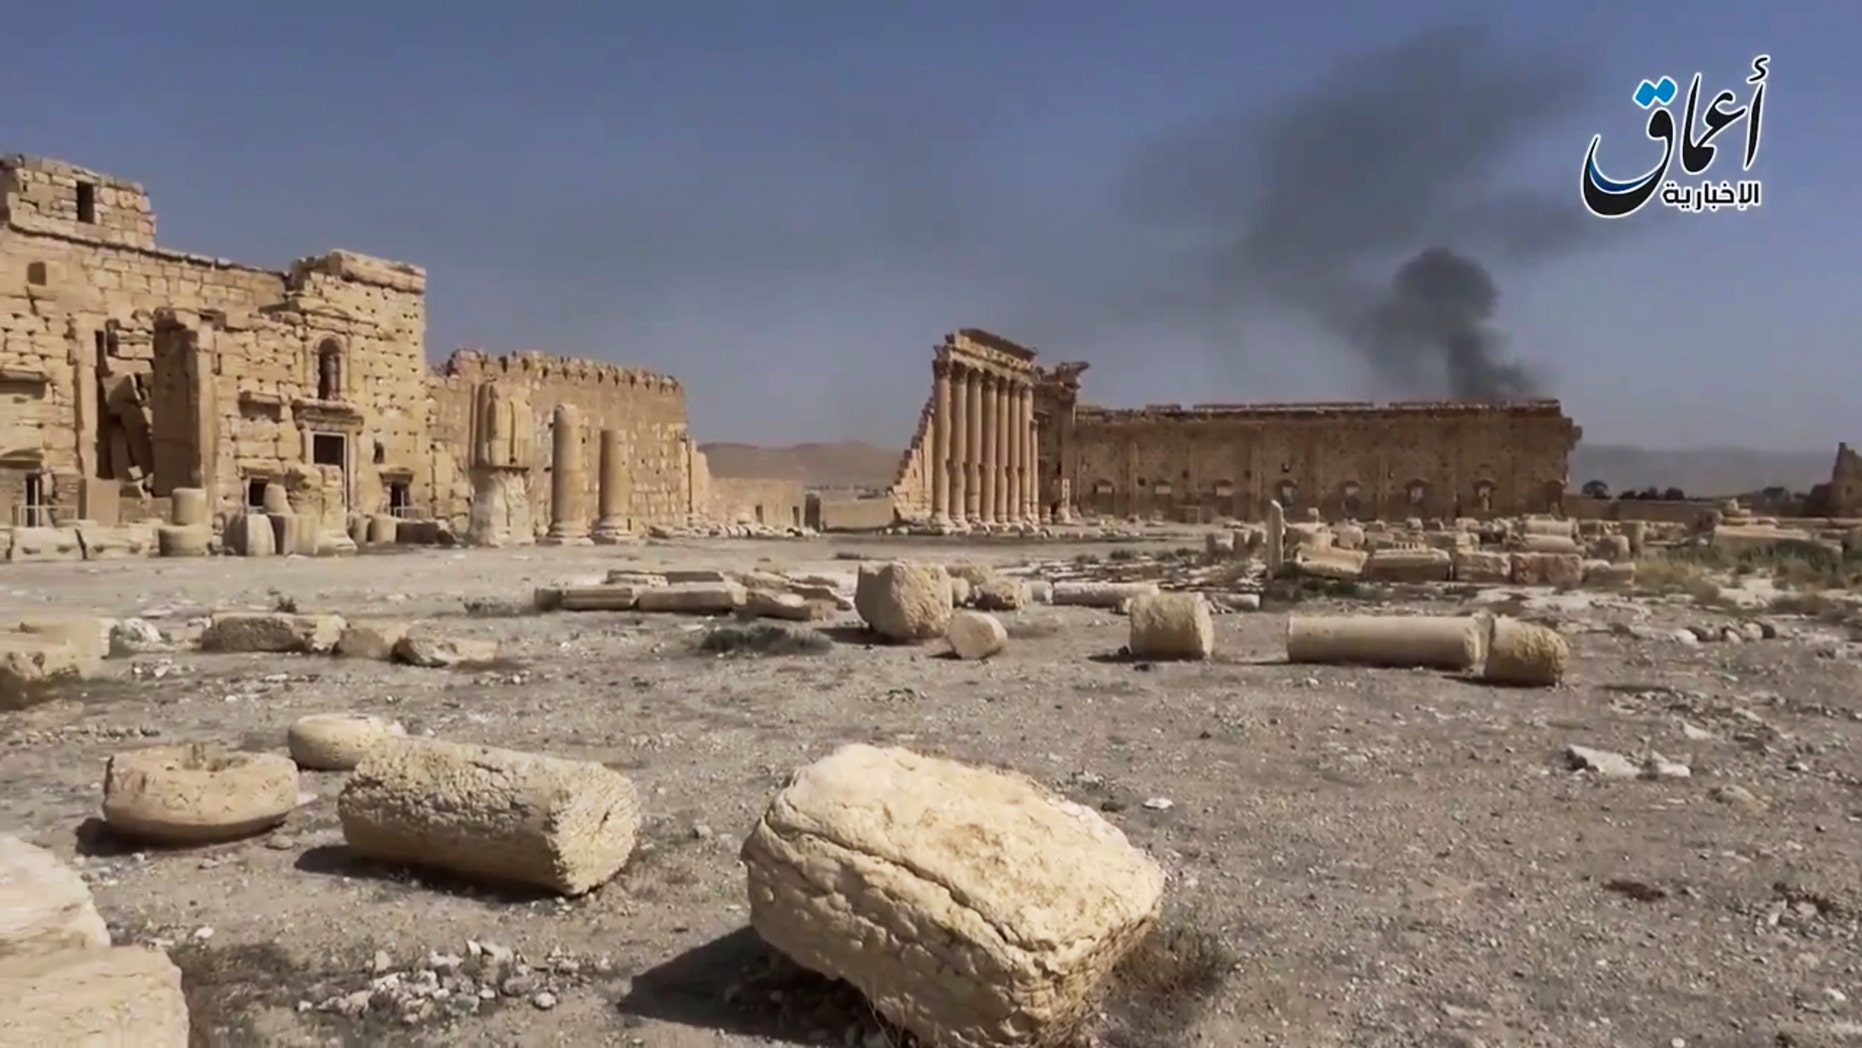 In this image made from a militant video posted on YouTube on May 26, 2015, which has been verified and is consistent with other AP reporting, smoke rises behind archaeological ruins in Palmyra, Syria. The video released by a media arm of the Islamic State group purportedly showed the archaeological ruins of Palmyra apparently undamaged.